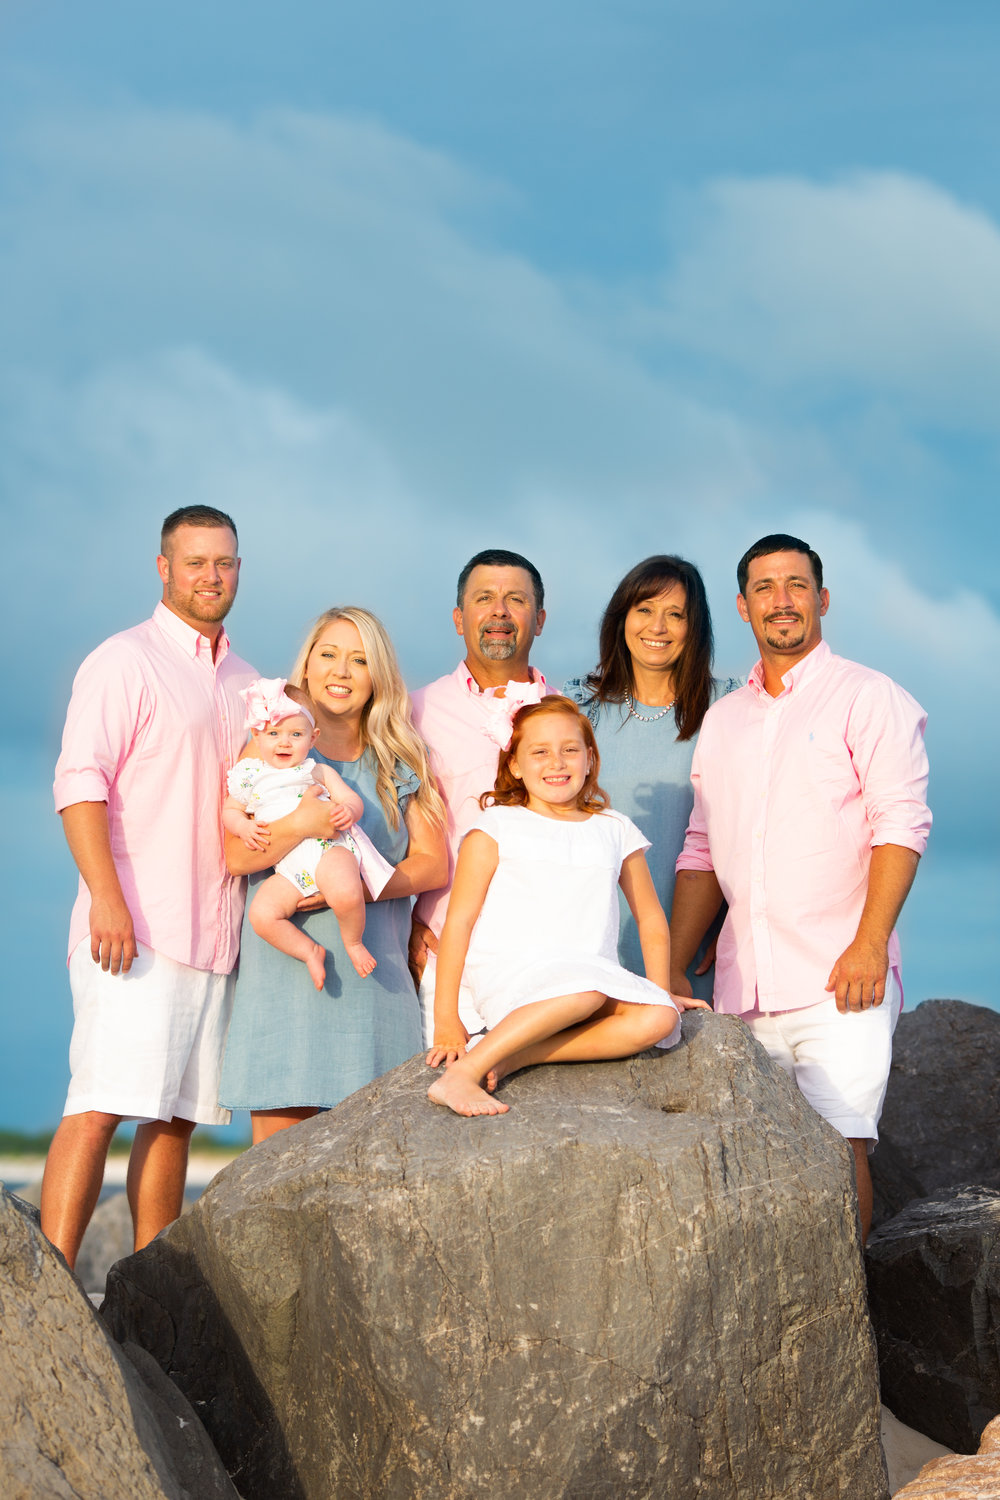 Beautiful Family Picture at a beach session.